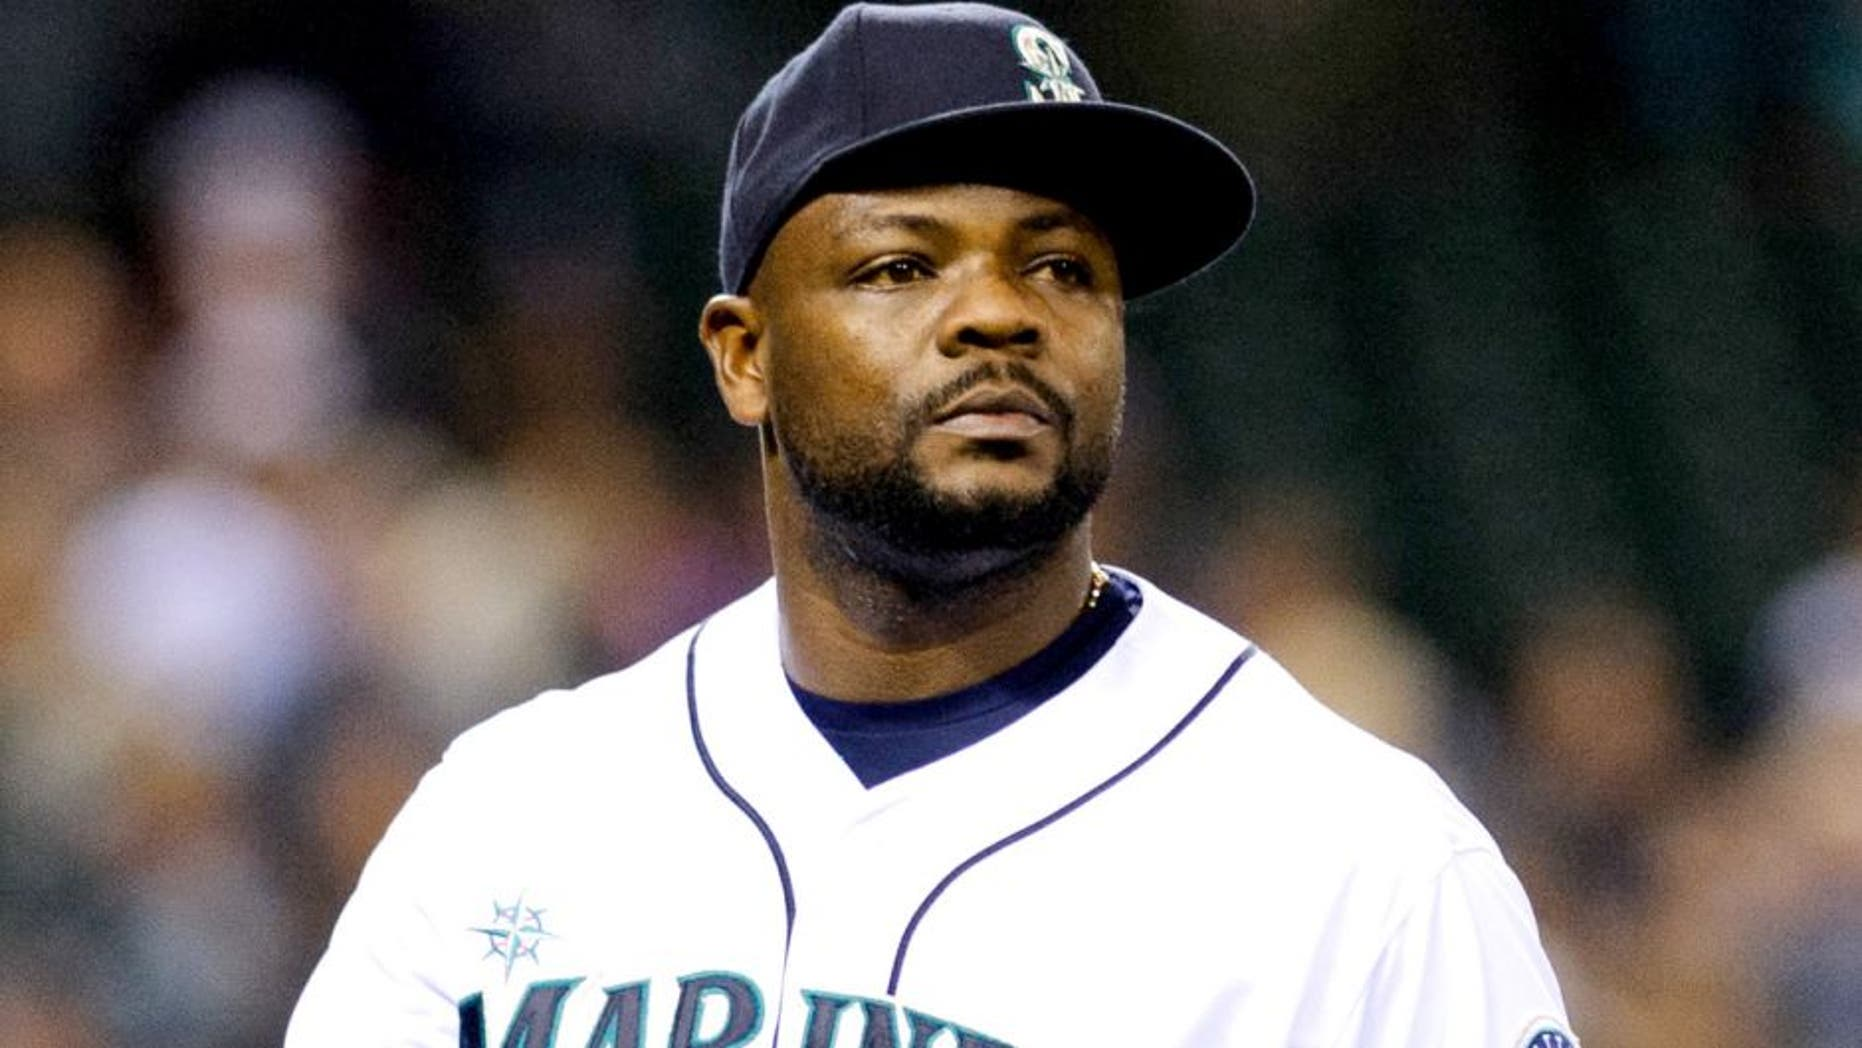 Jun 14, 2014; Seattle, WA, USA; Seattle Mariners relief pitcher Fernando Rodney (56) during the game against the Texas Rangers at Safeco Field. Texas defeated Seattle 4-3. Mandatory Credit: Steven Bisig-USA TODAY Sports